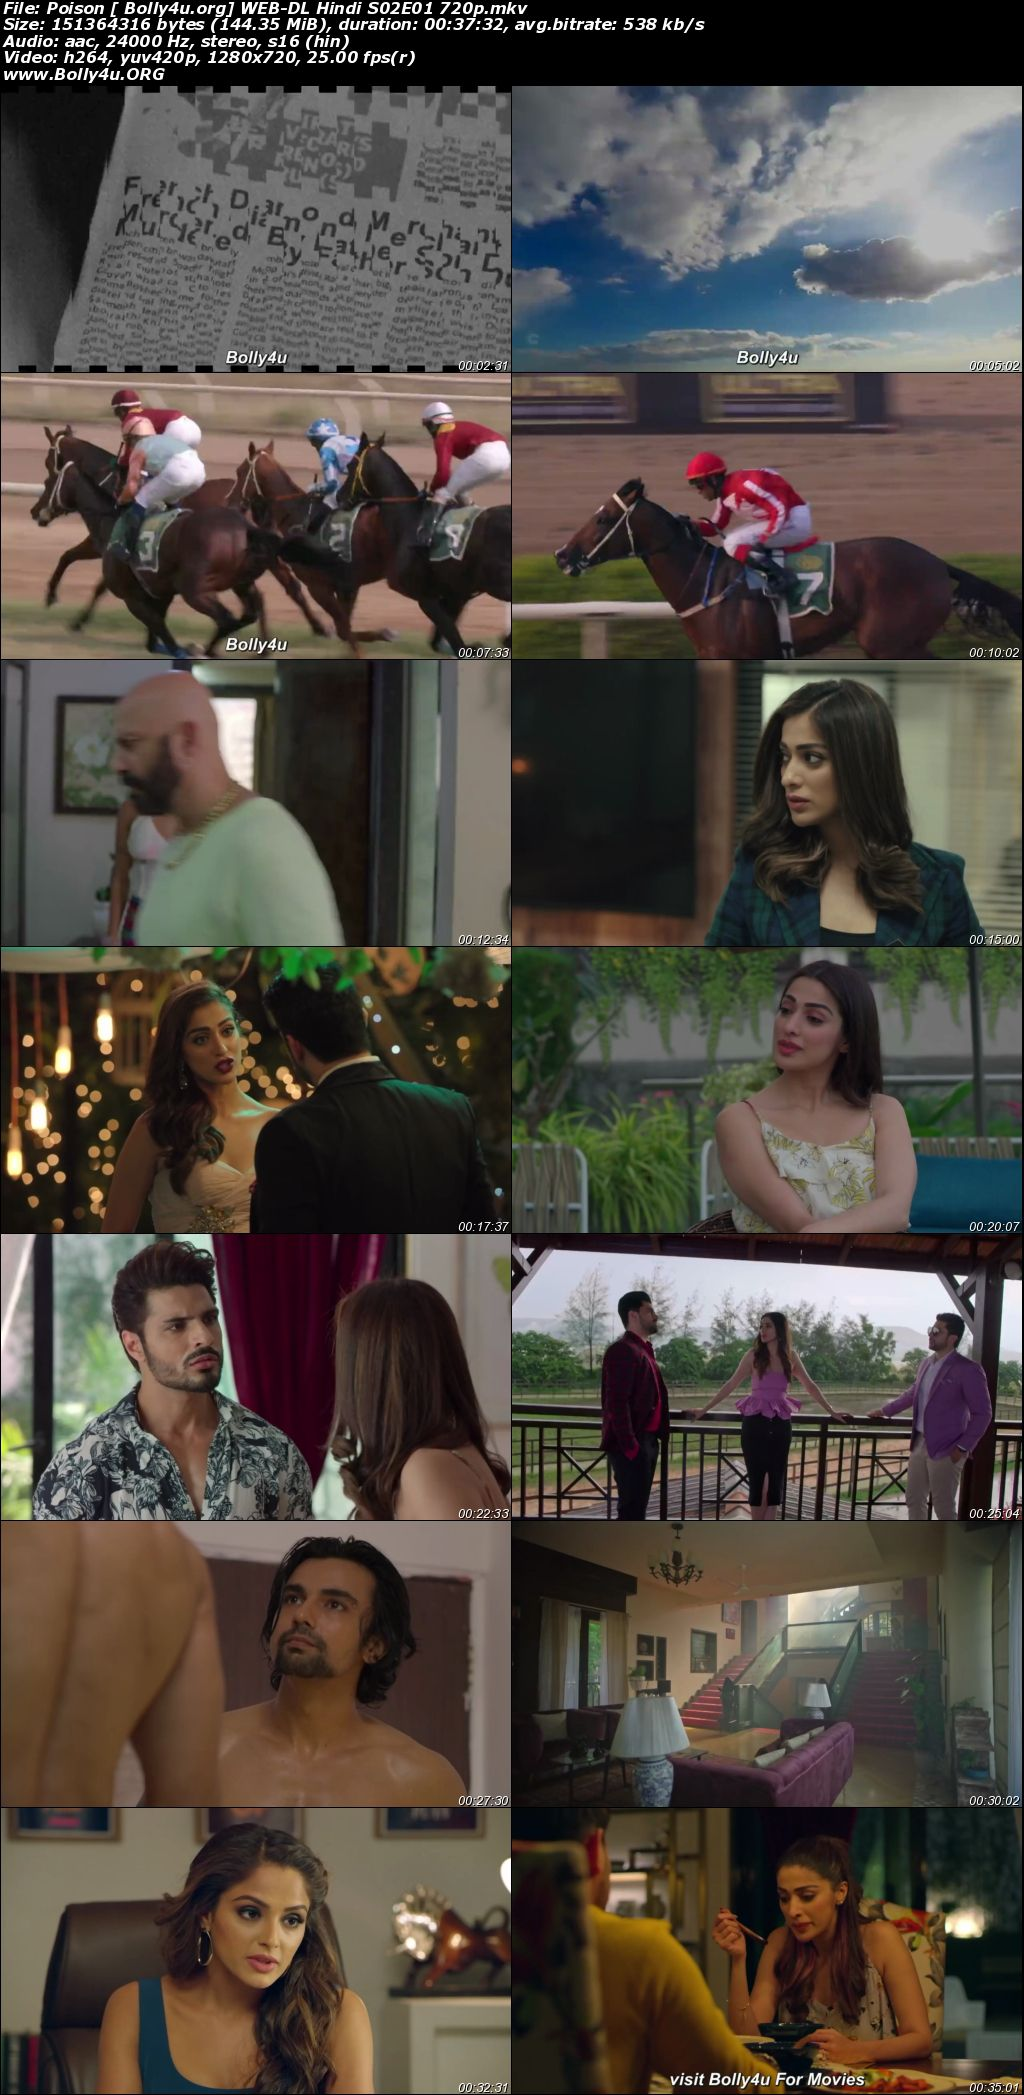 Poison 2020 WEB-DL Hindi Complete S02 Download 720p